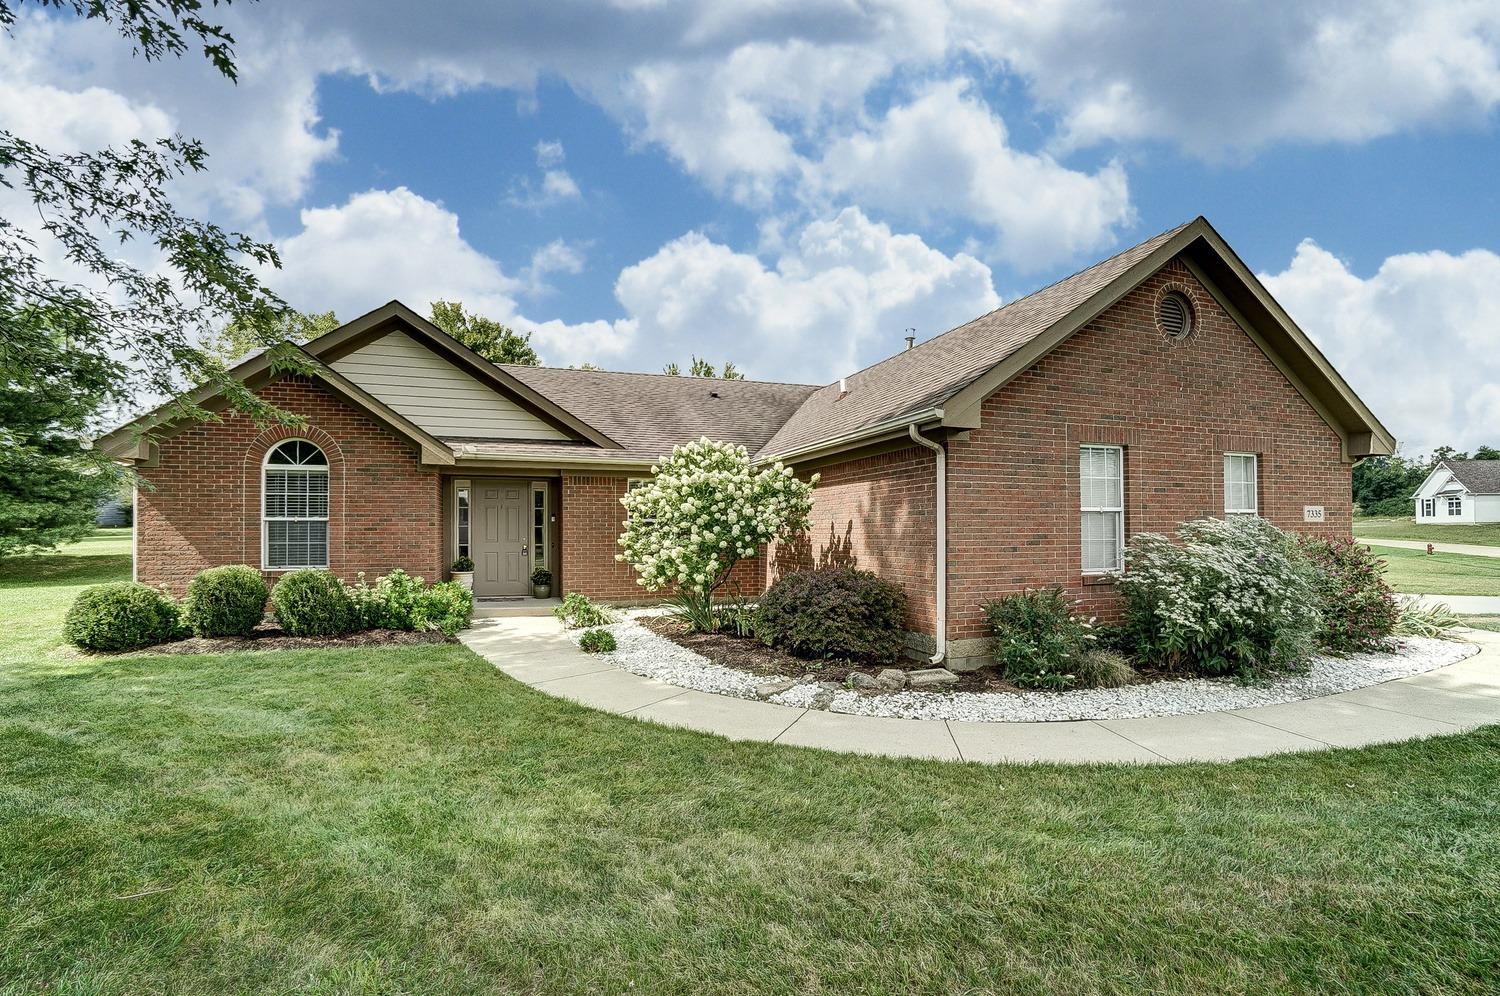 Property for sale at 7335 Larkspur Court, Clearcreek Twp.,  Ohio 45066